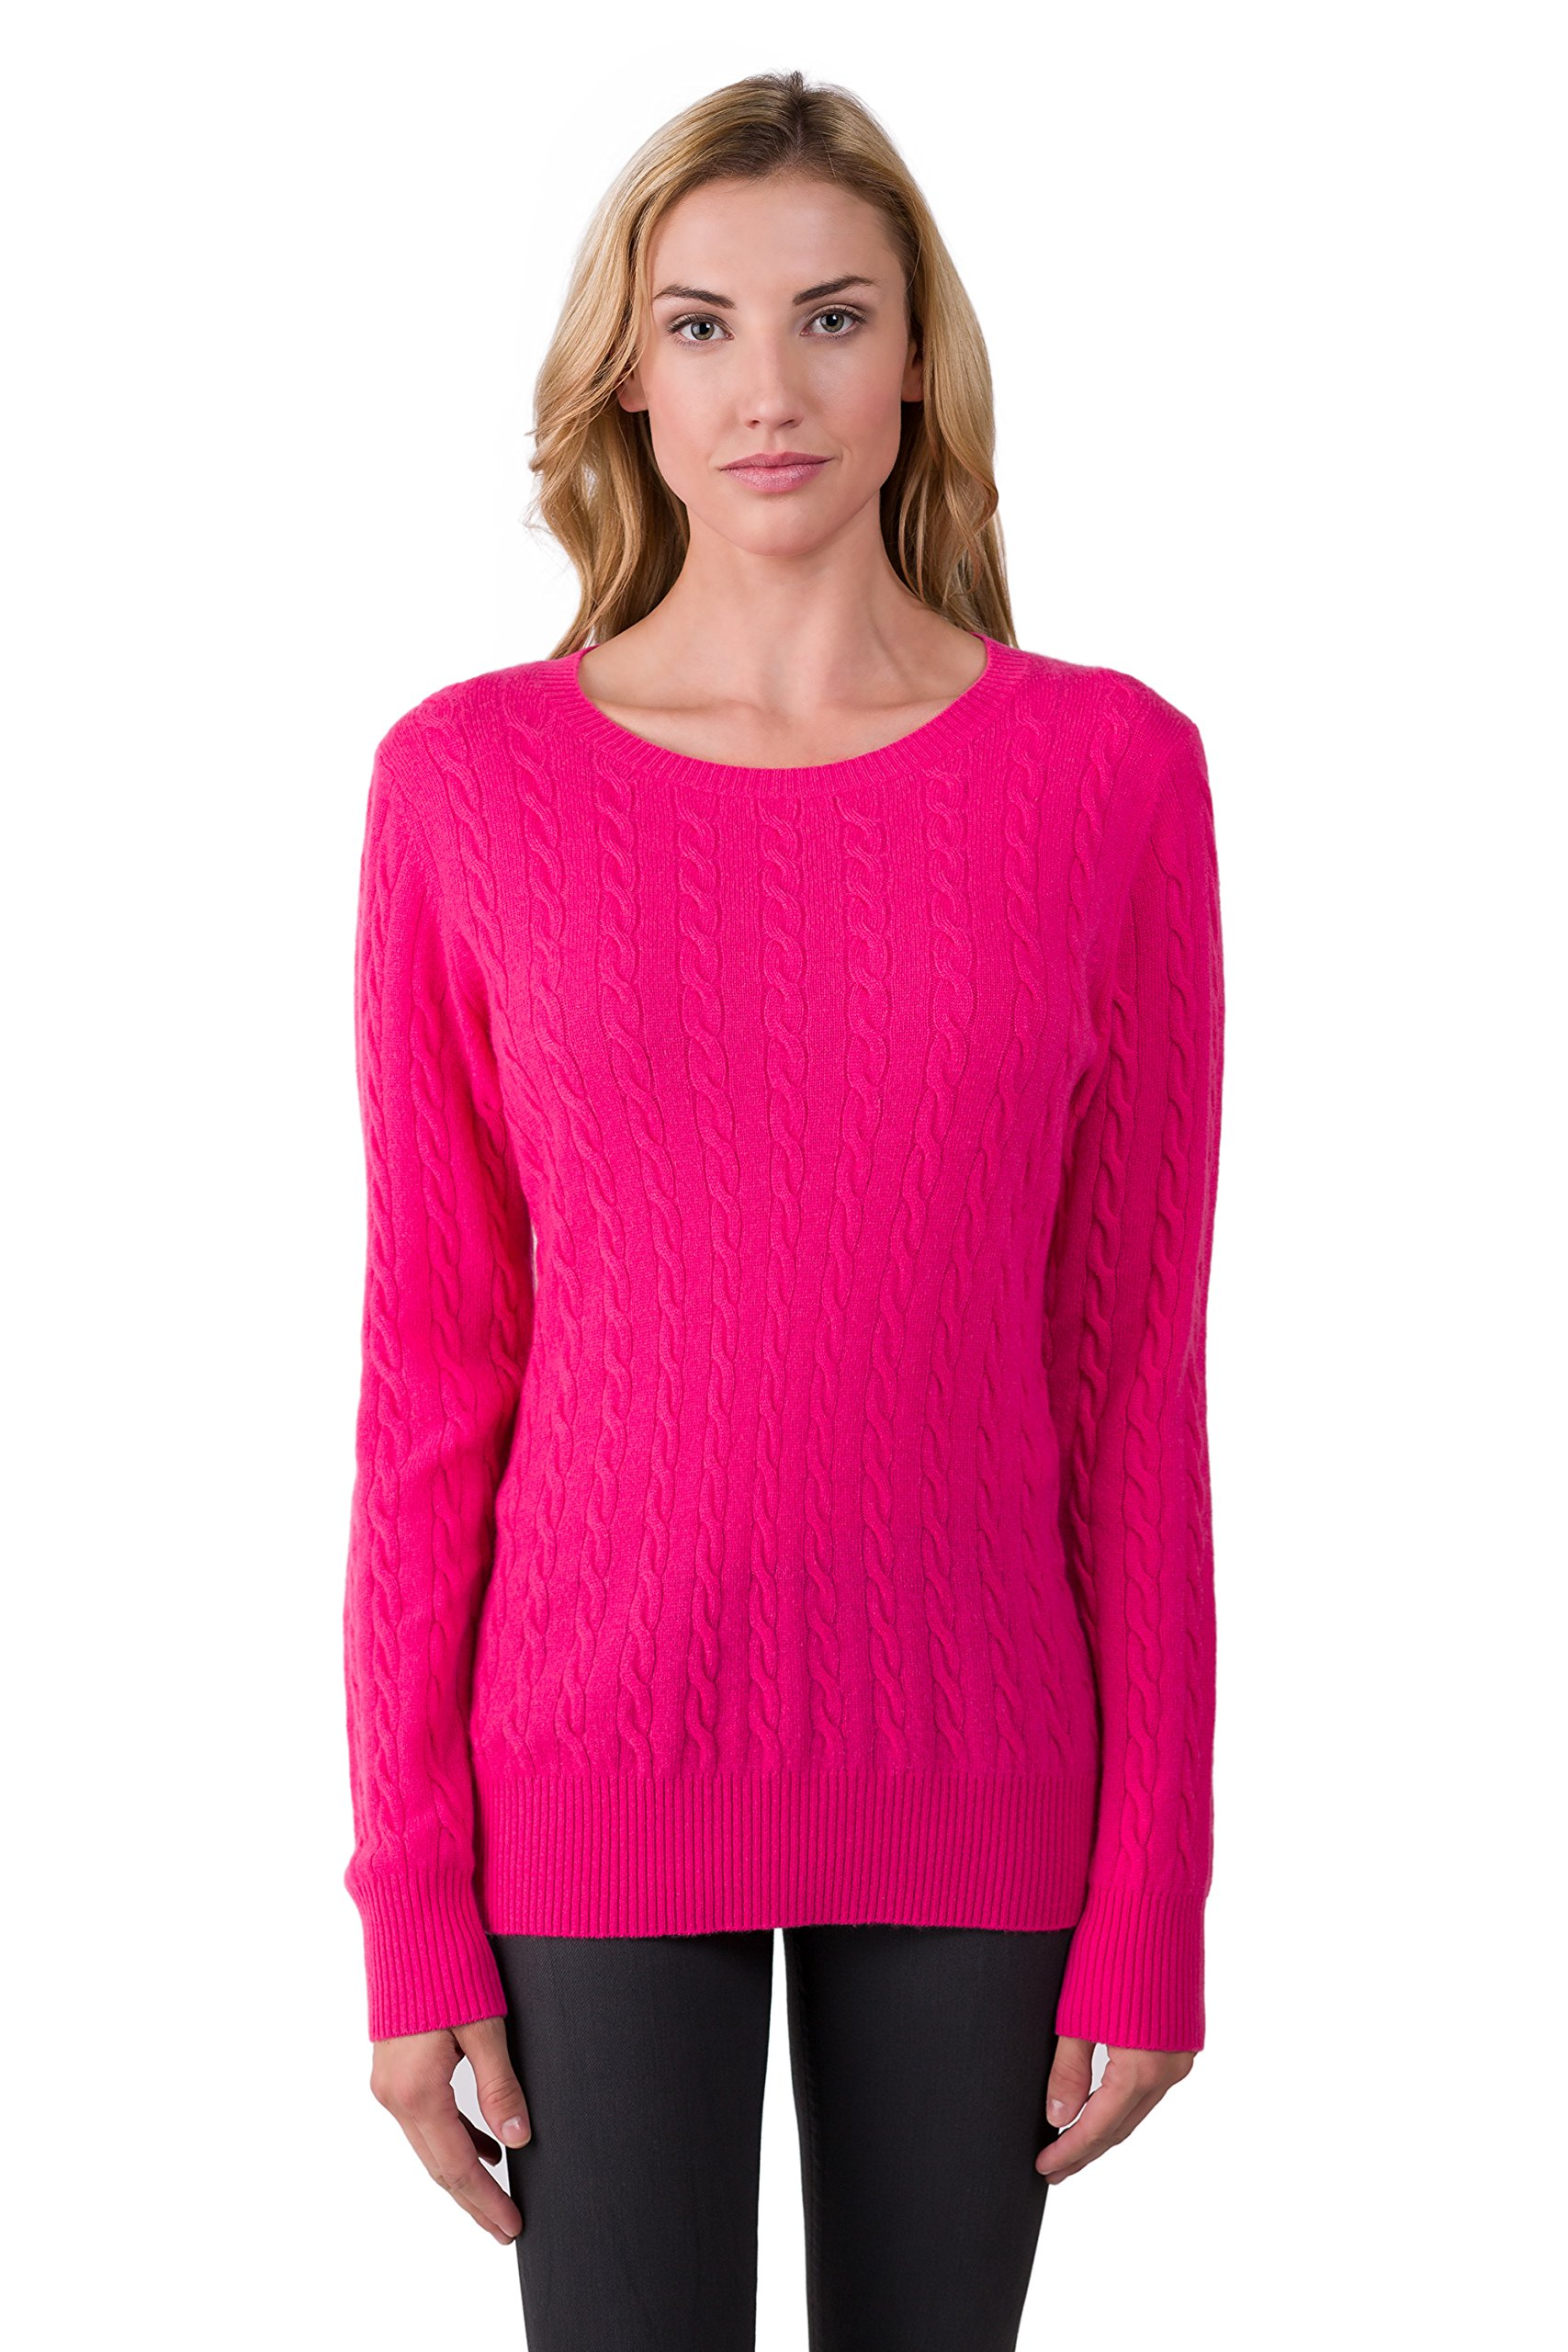 J CASHMERE Women's 100% Cashmere Long Sleeve Pullover Cable Crewneck Sweater Hotpink Medium